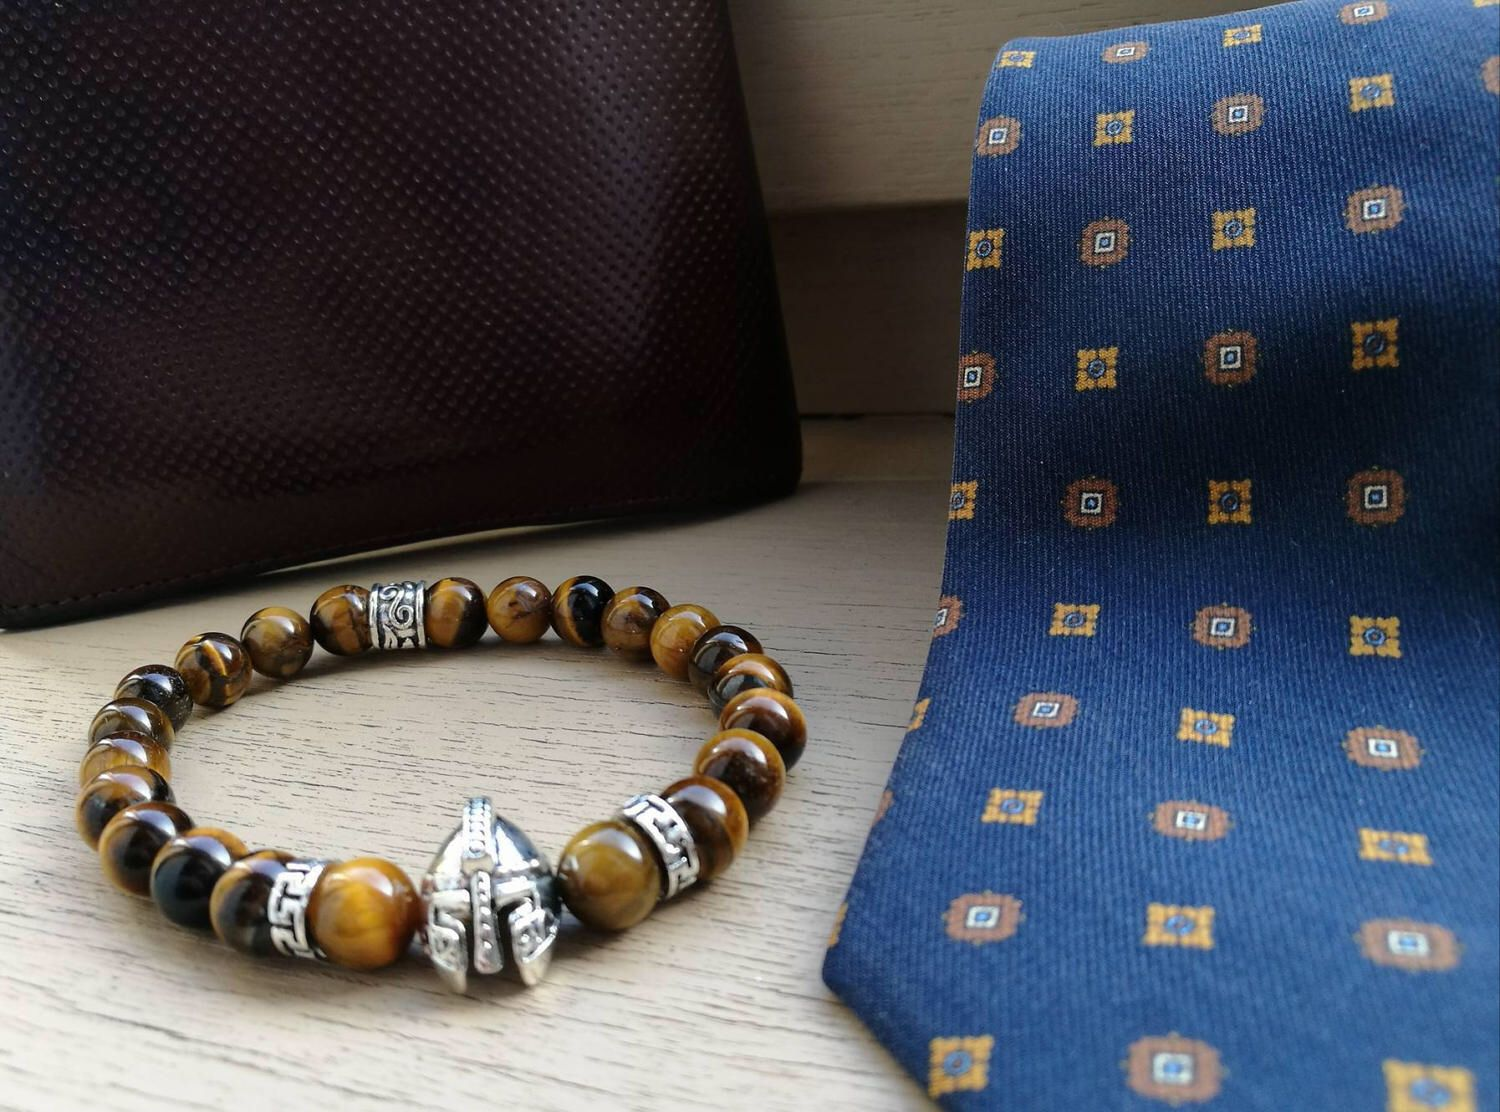 Viking Bracelet For Men, Men Gladiator Beaded Bracelet, Spartan Beaded  Bracelet, Tiger Eye Bracelet Men, Metal Helmet Bracelet For Men